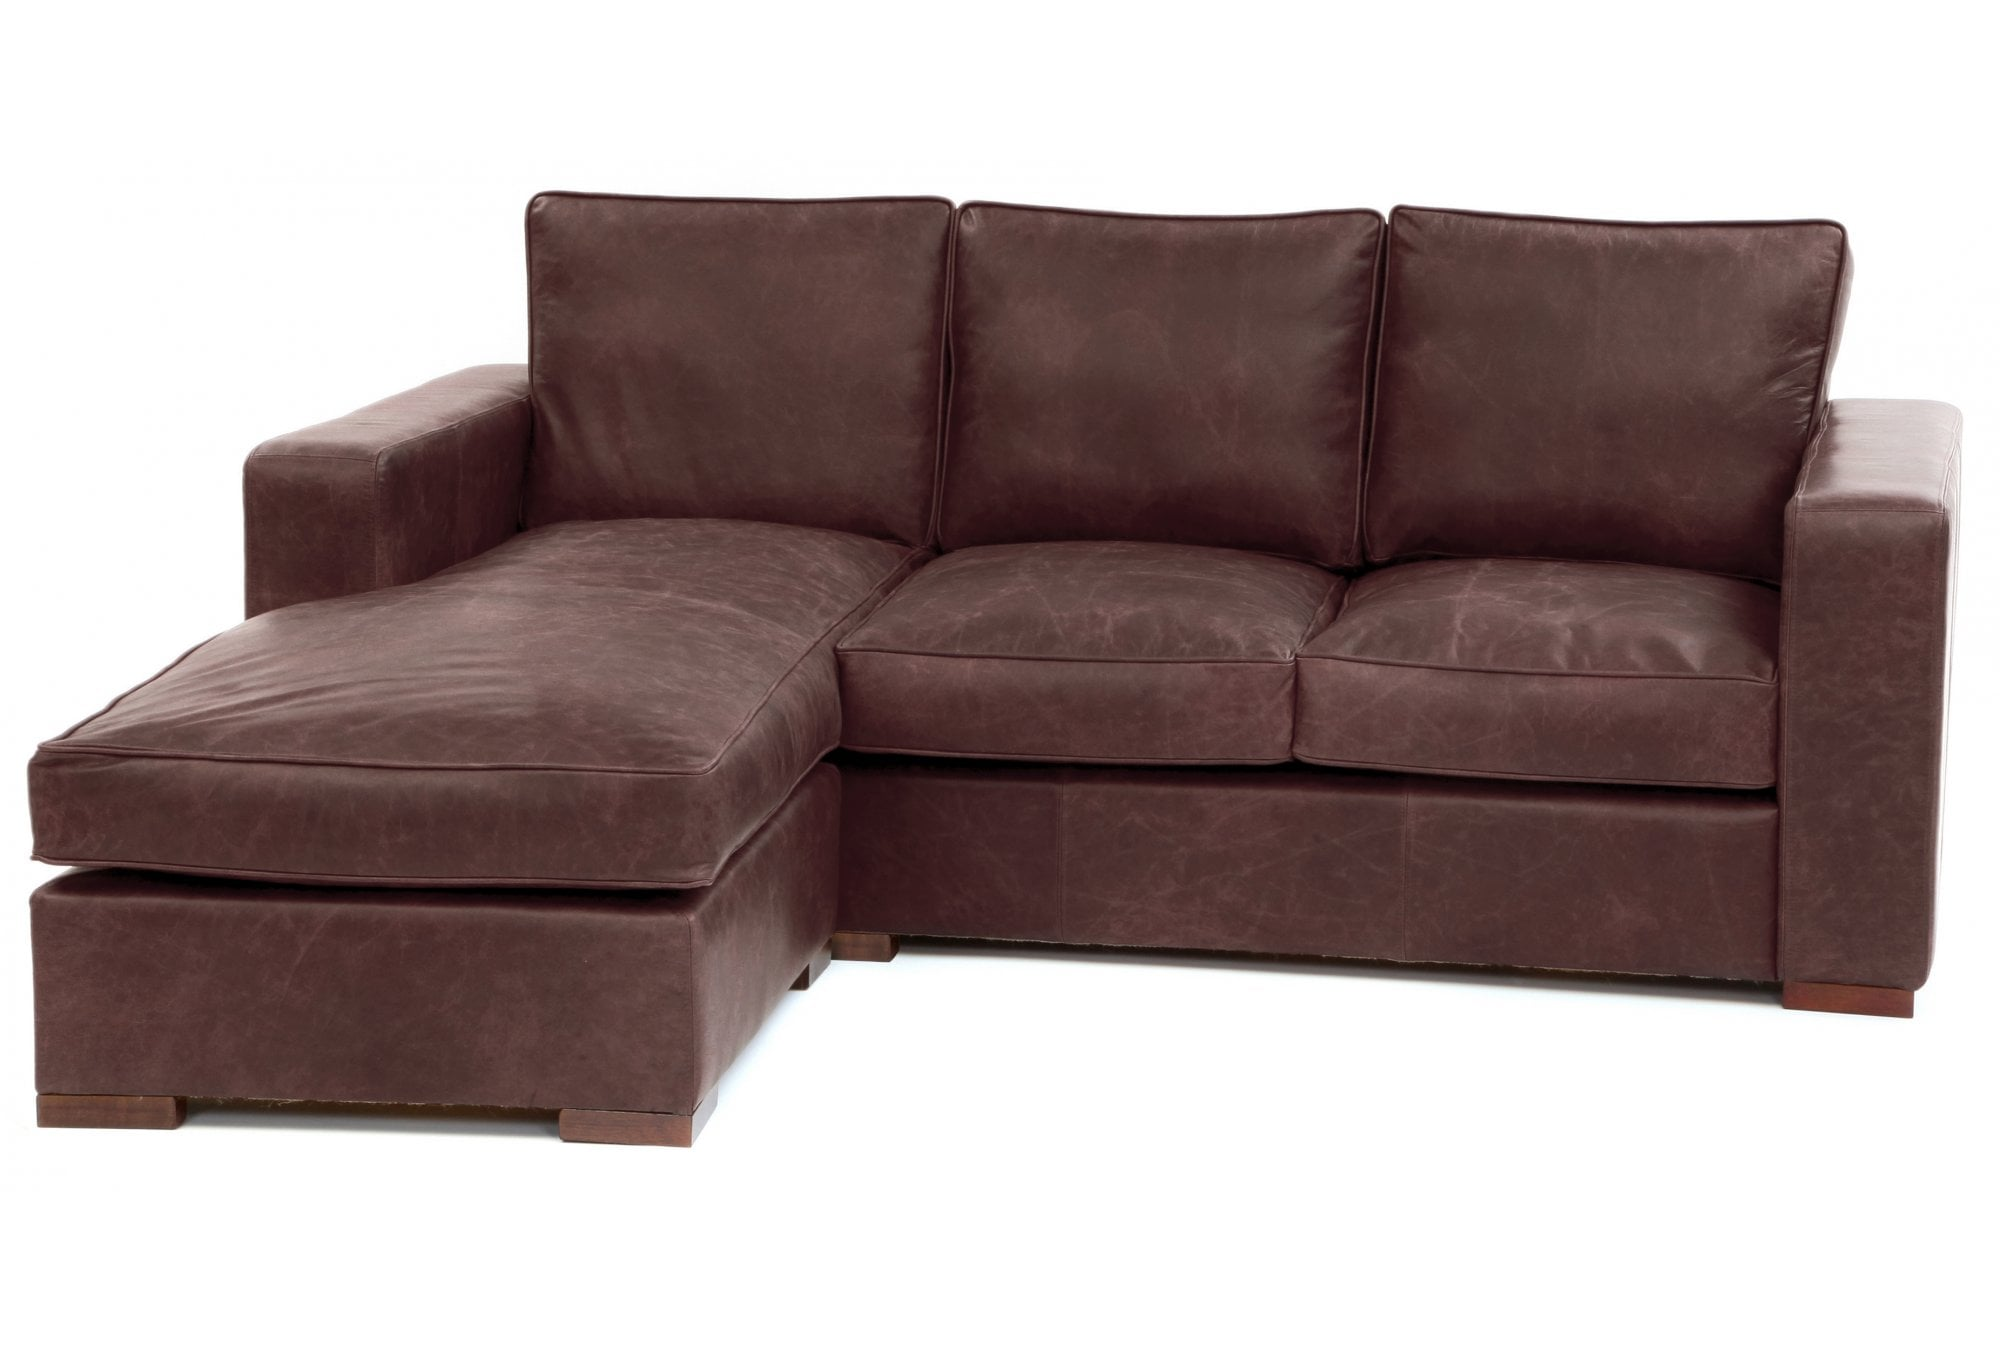 Battersea Chaise End Medium Leather Corner Sofa From Old